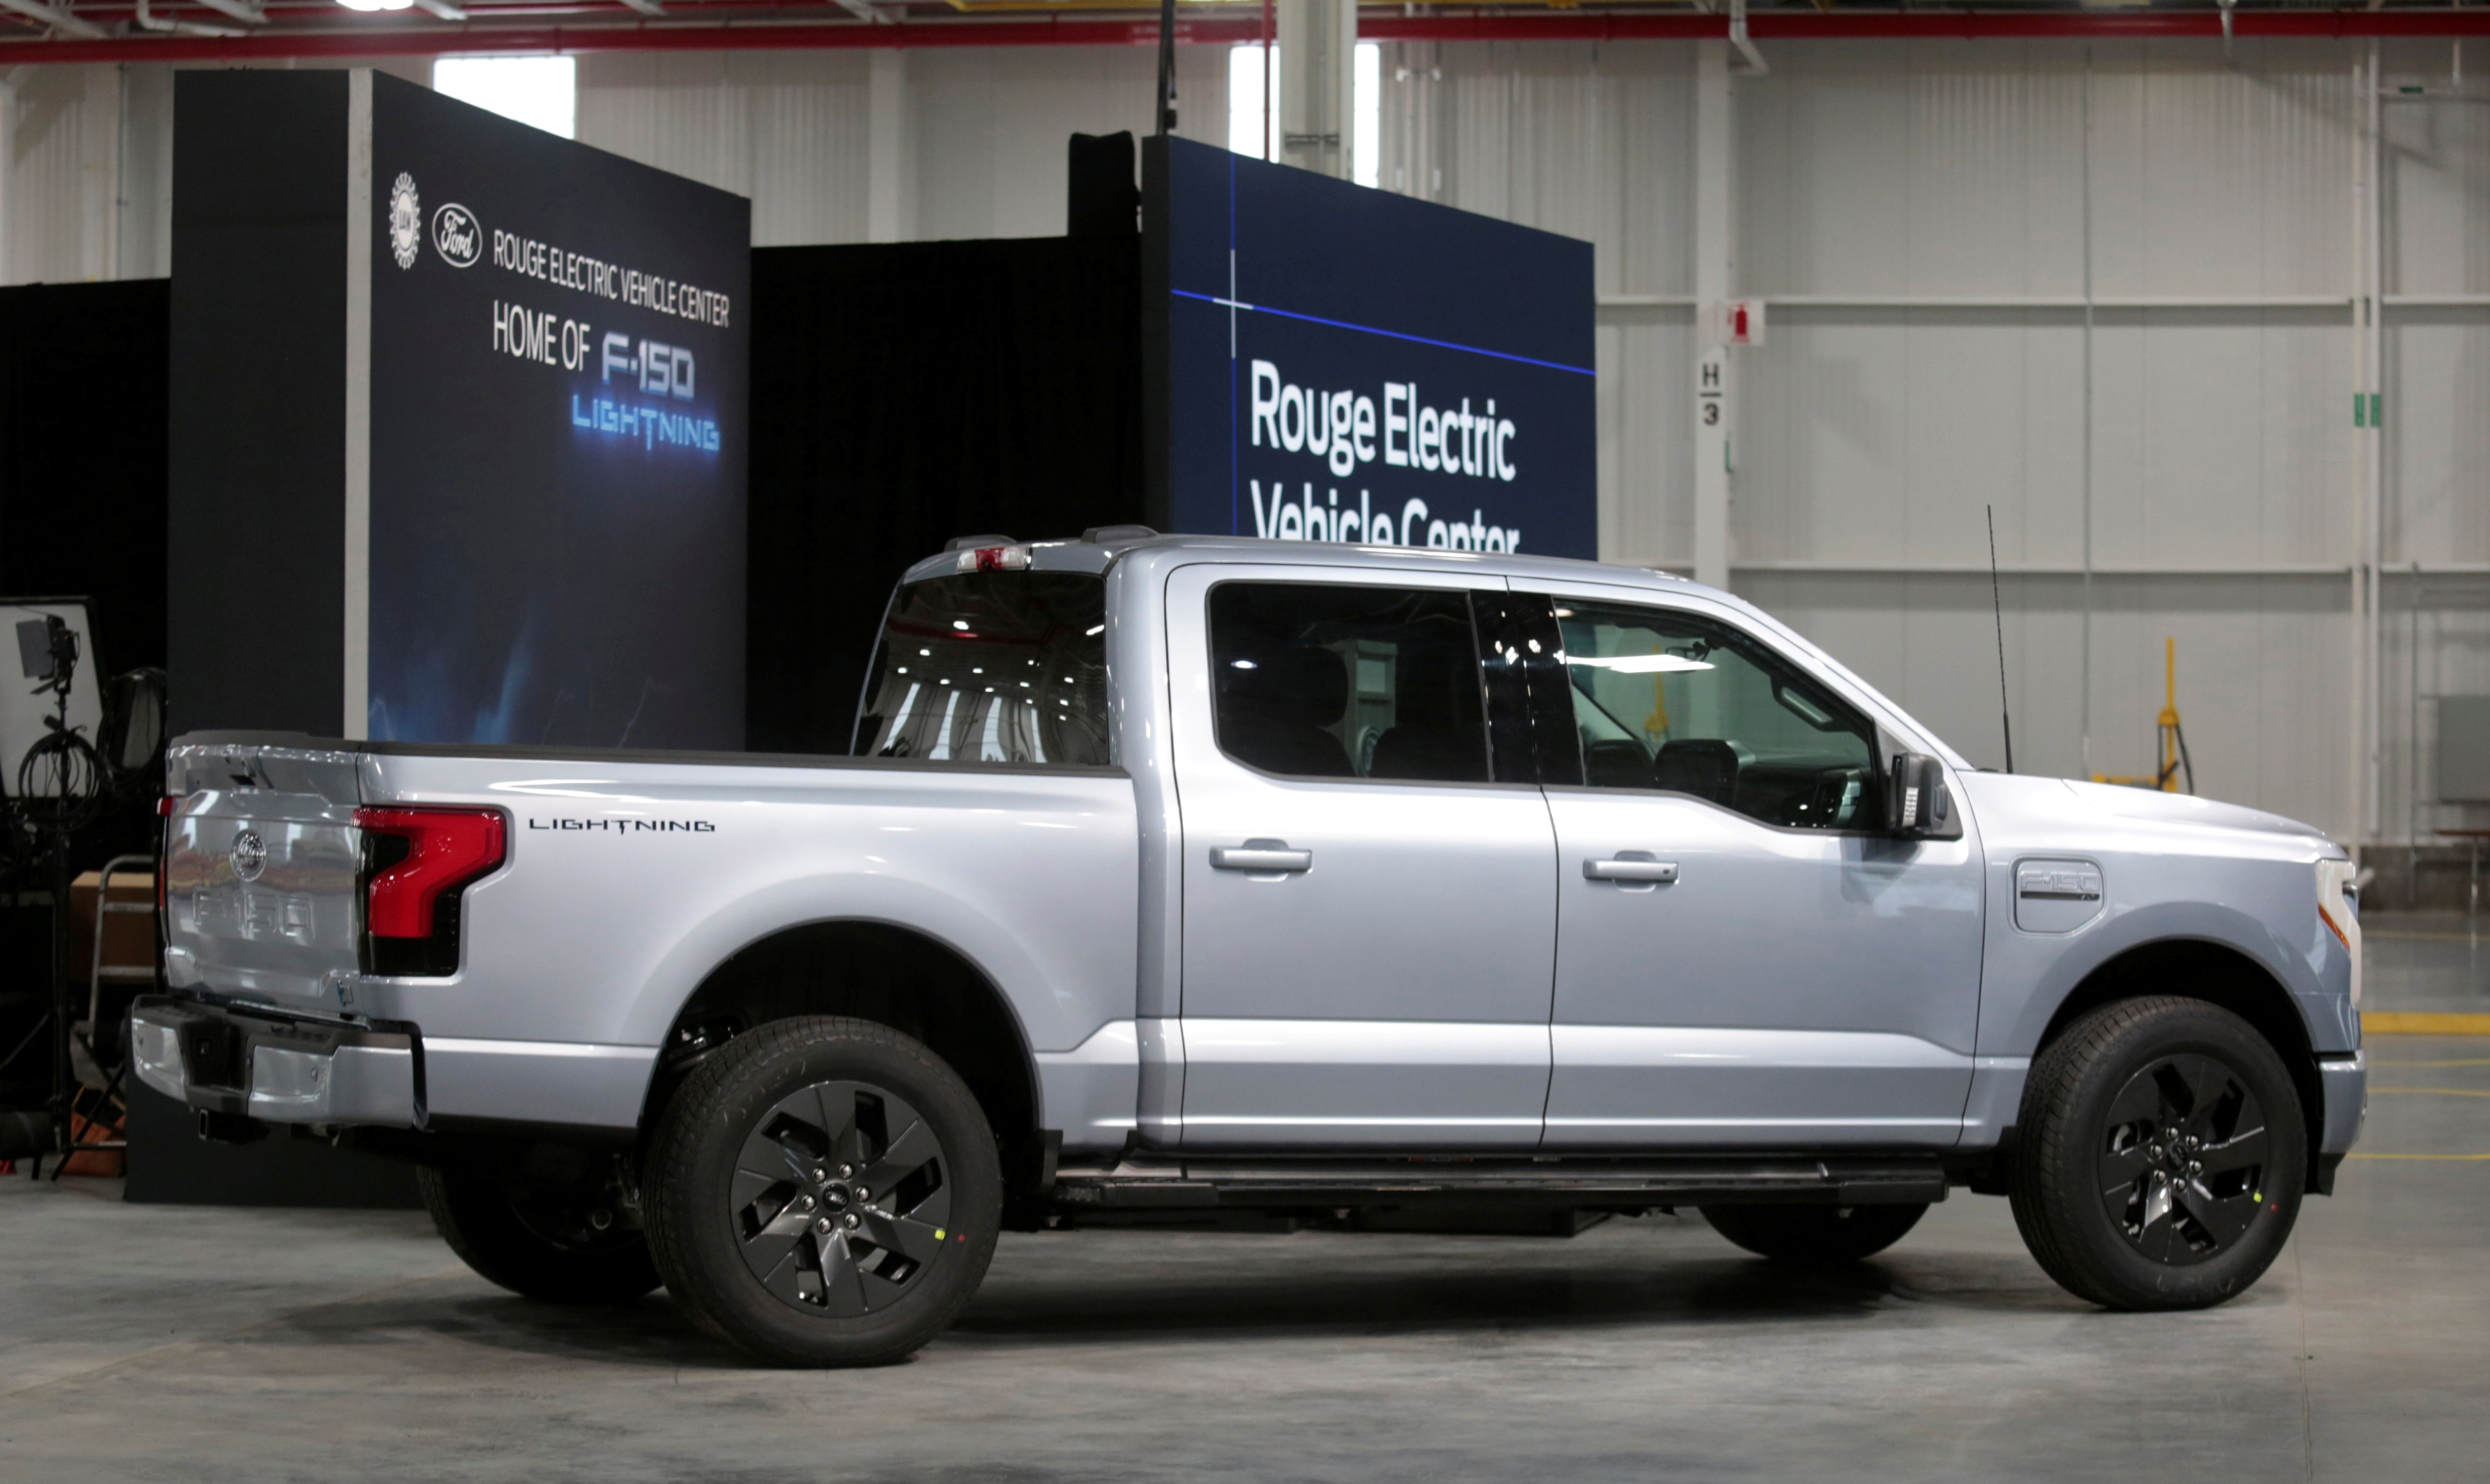 A Ford all-electric F-150 Lightning truck prototype is seen at the Rouge Electric Vehicle Center in Dearborn, Michigan, U.S. September 16, 2021   REUTERS/Rebecca Cook/File Photo